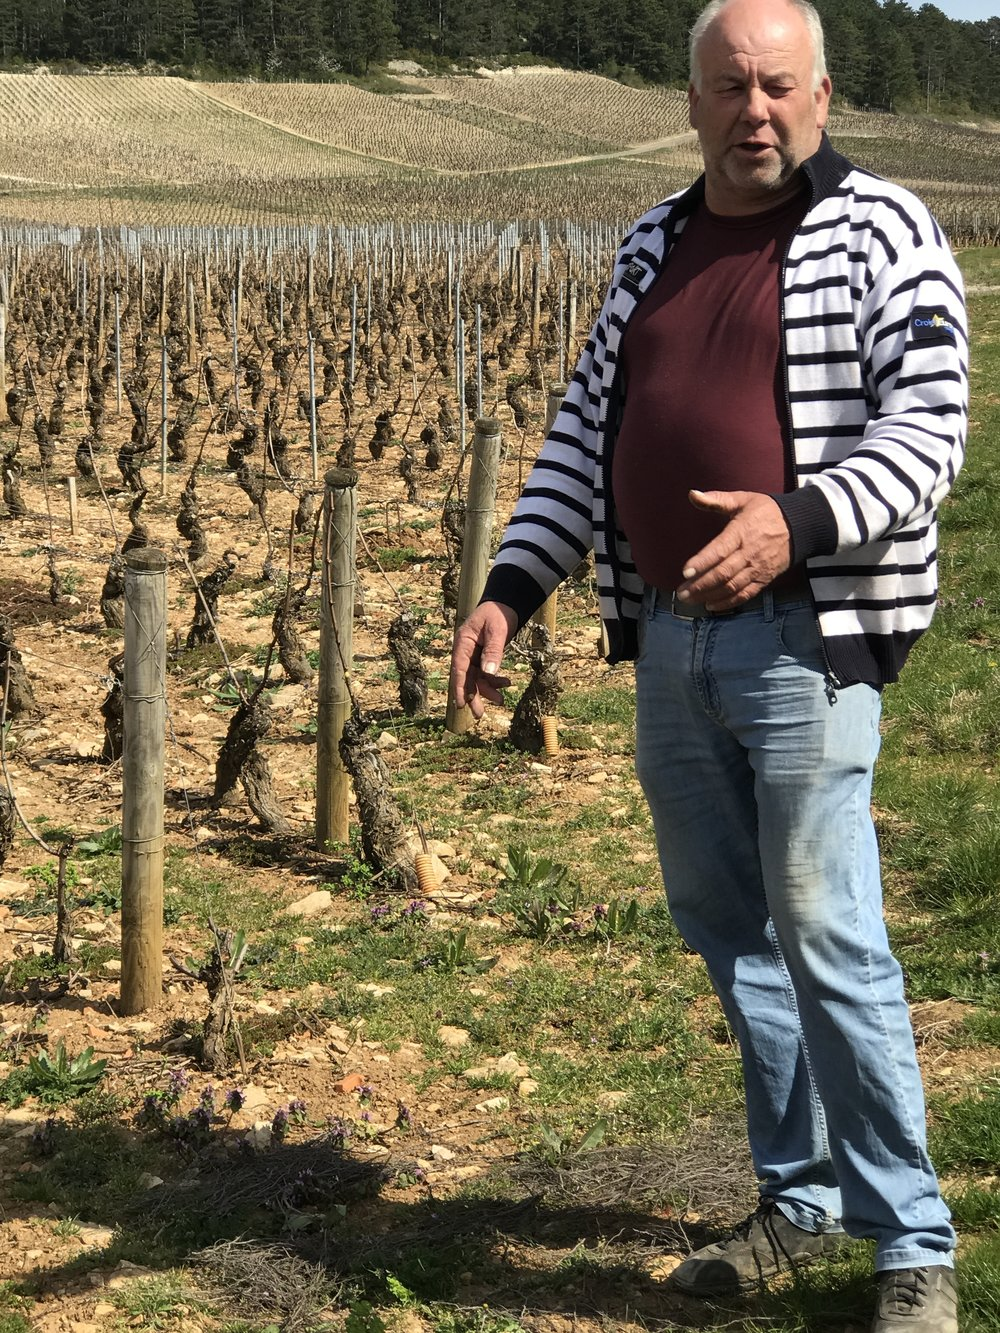 Paul Garaudet at Monthelie talks about the challenges of organic farming, he practices lutte raissonneé and understands the importance of responsible wine making, but will argue the politics of it!  Like anything else there are always many different perspectives.